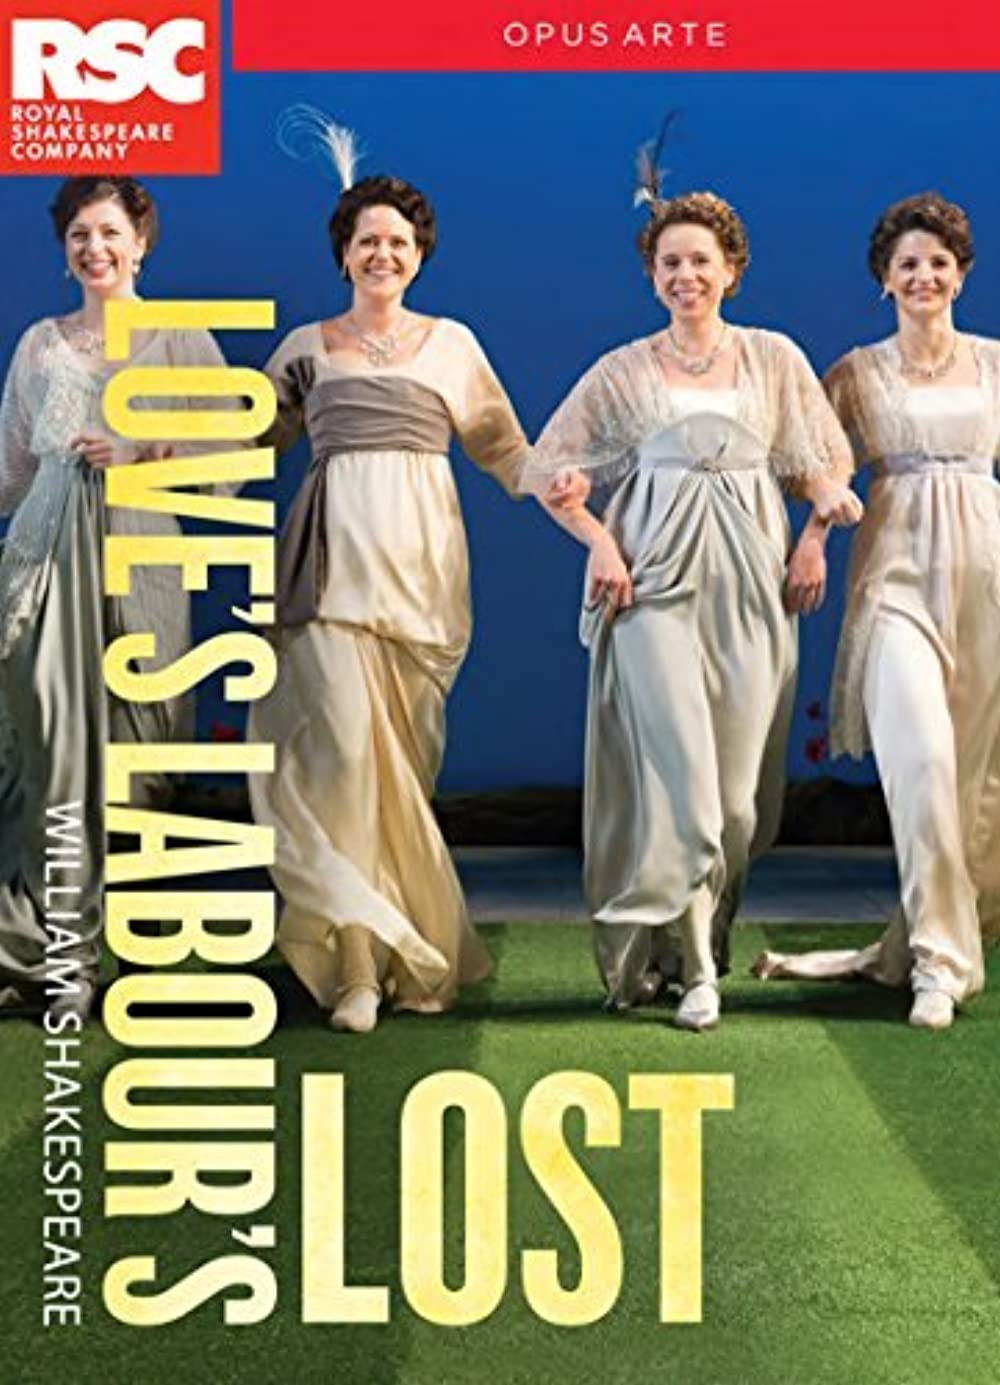 Watch Royal Shakespeare Company: Love's Labour's Lost Online